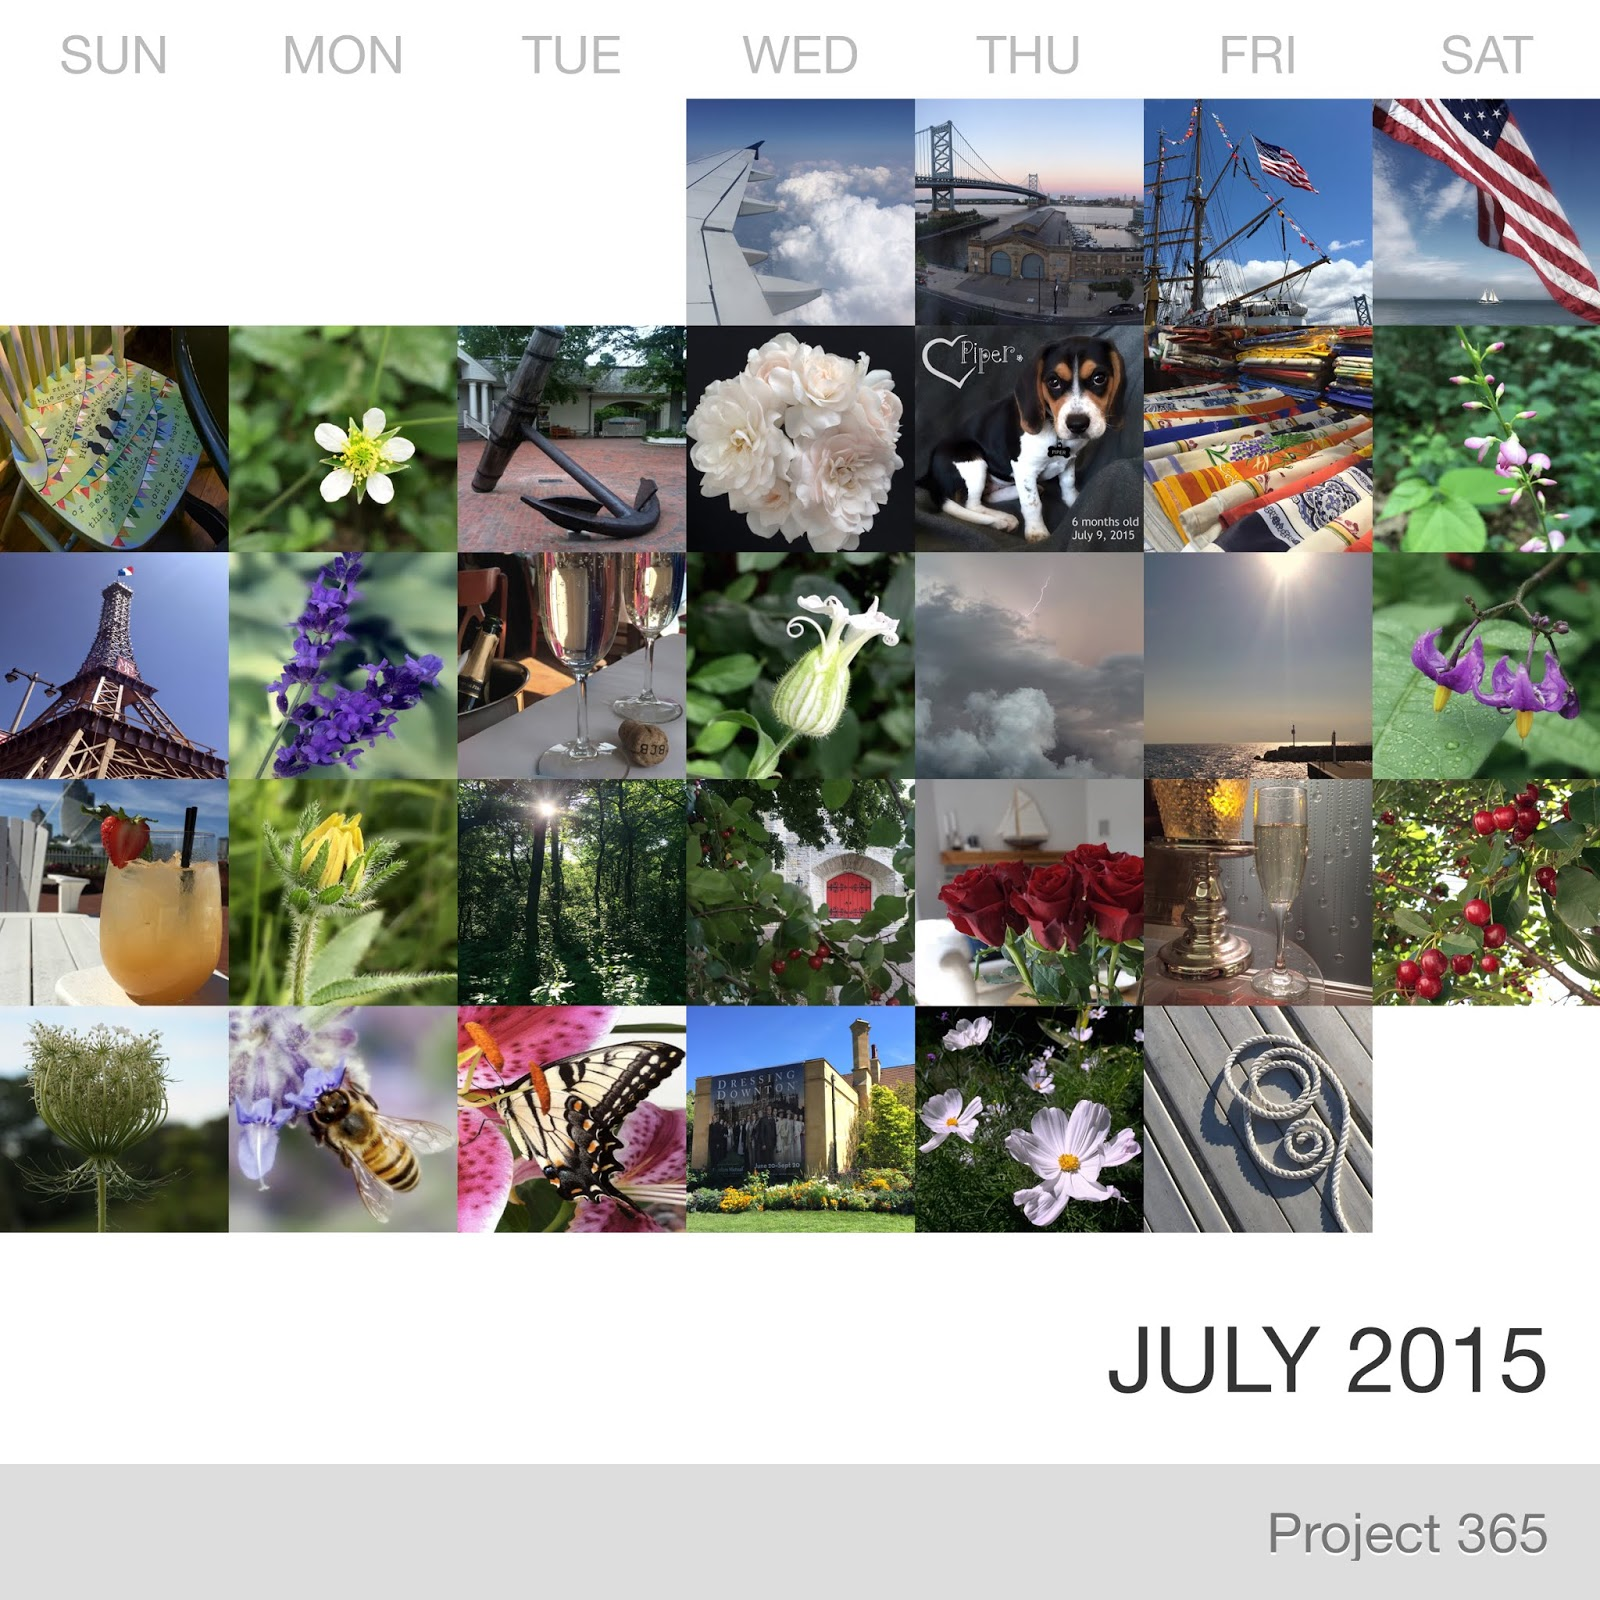 Project 365 _July-2015_Collage.jpg